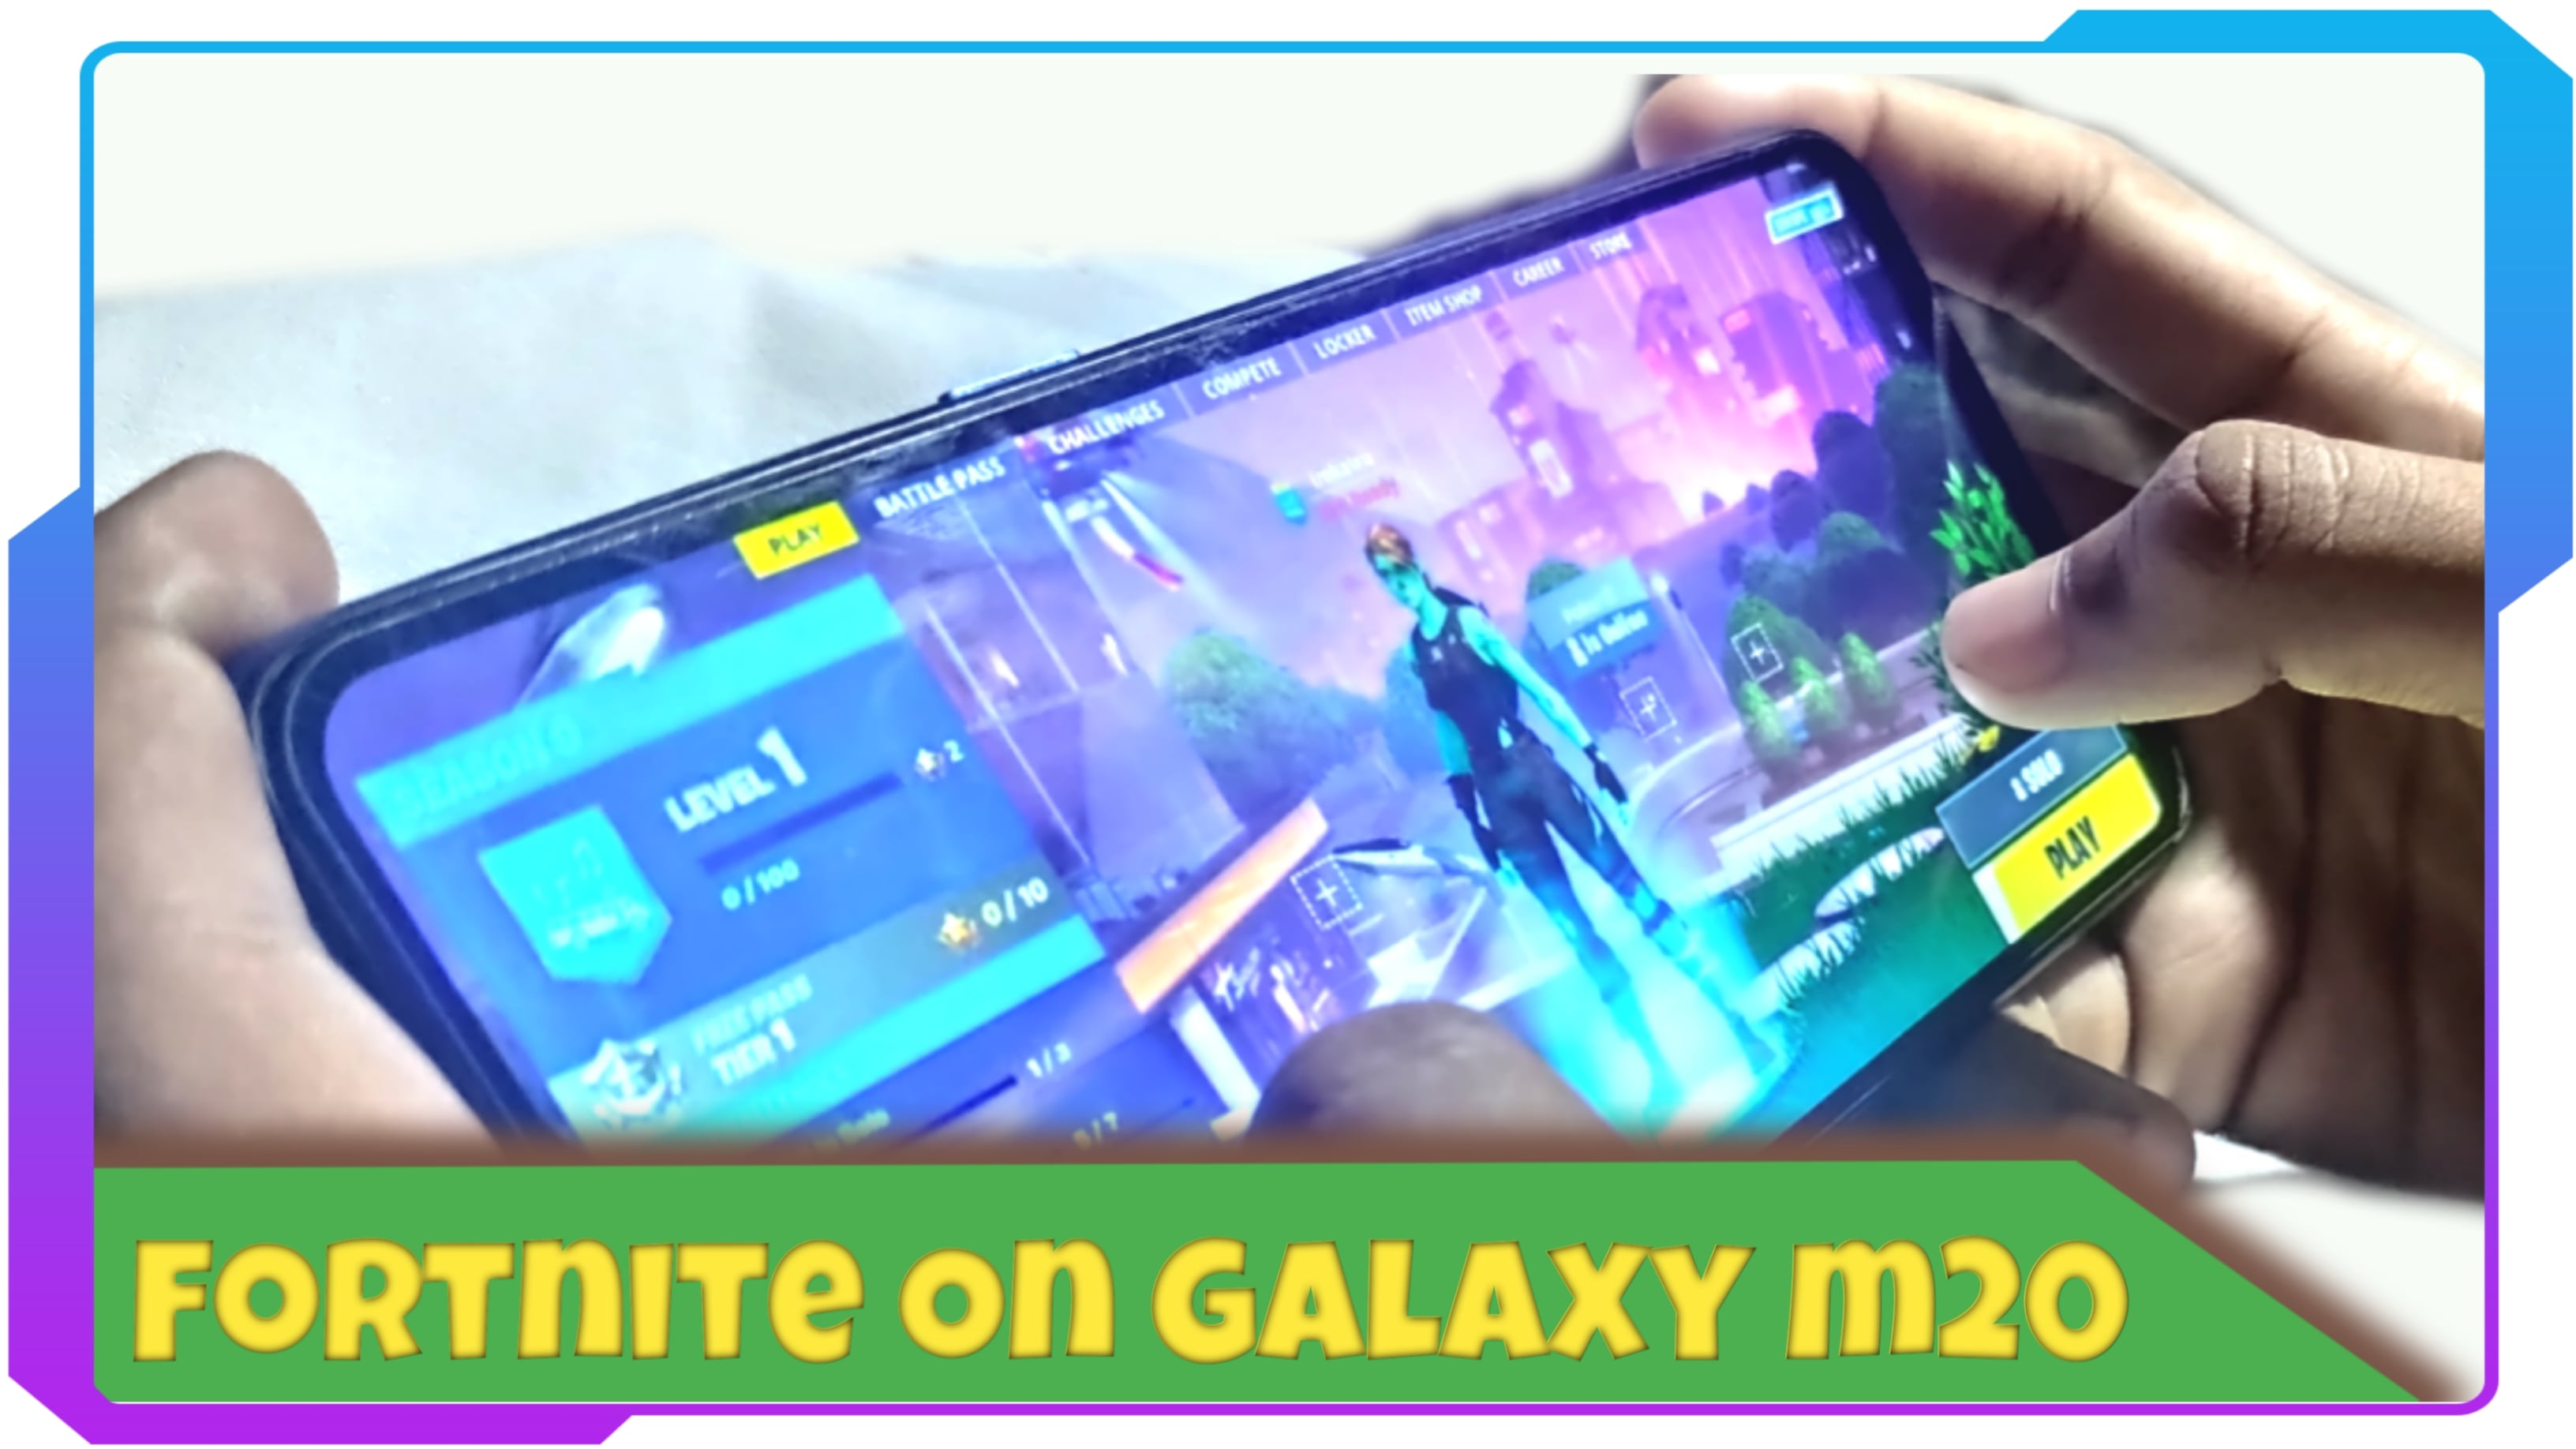 Fortnite on Galaxy m20